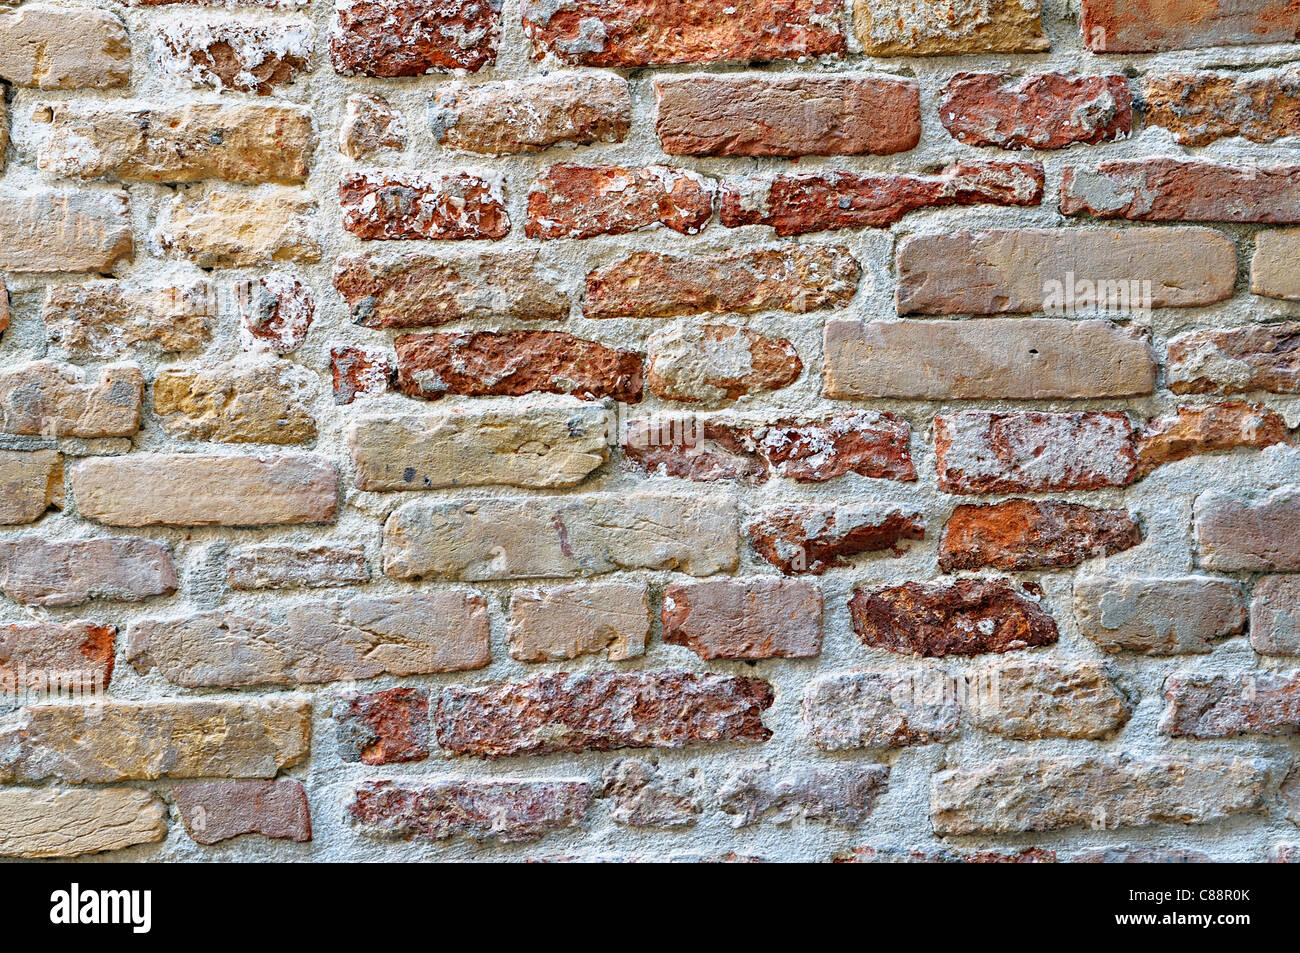 Old Brick Wall - Stock Image